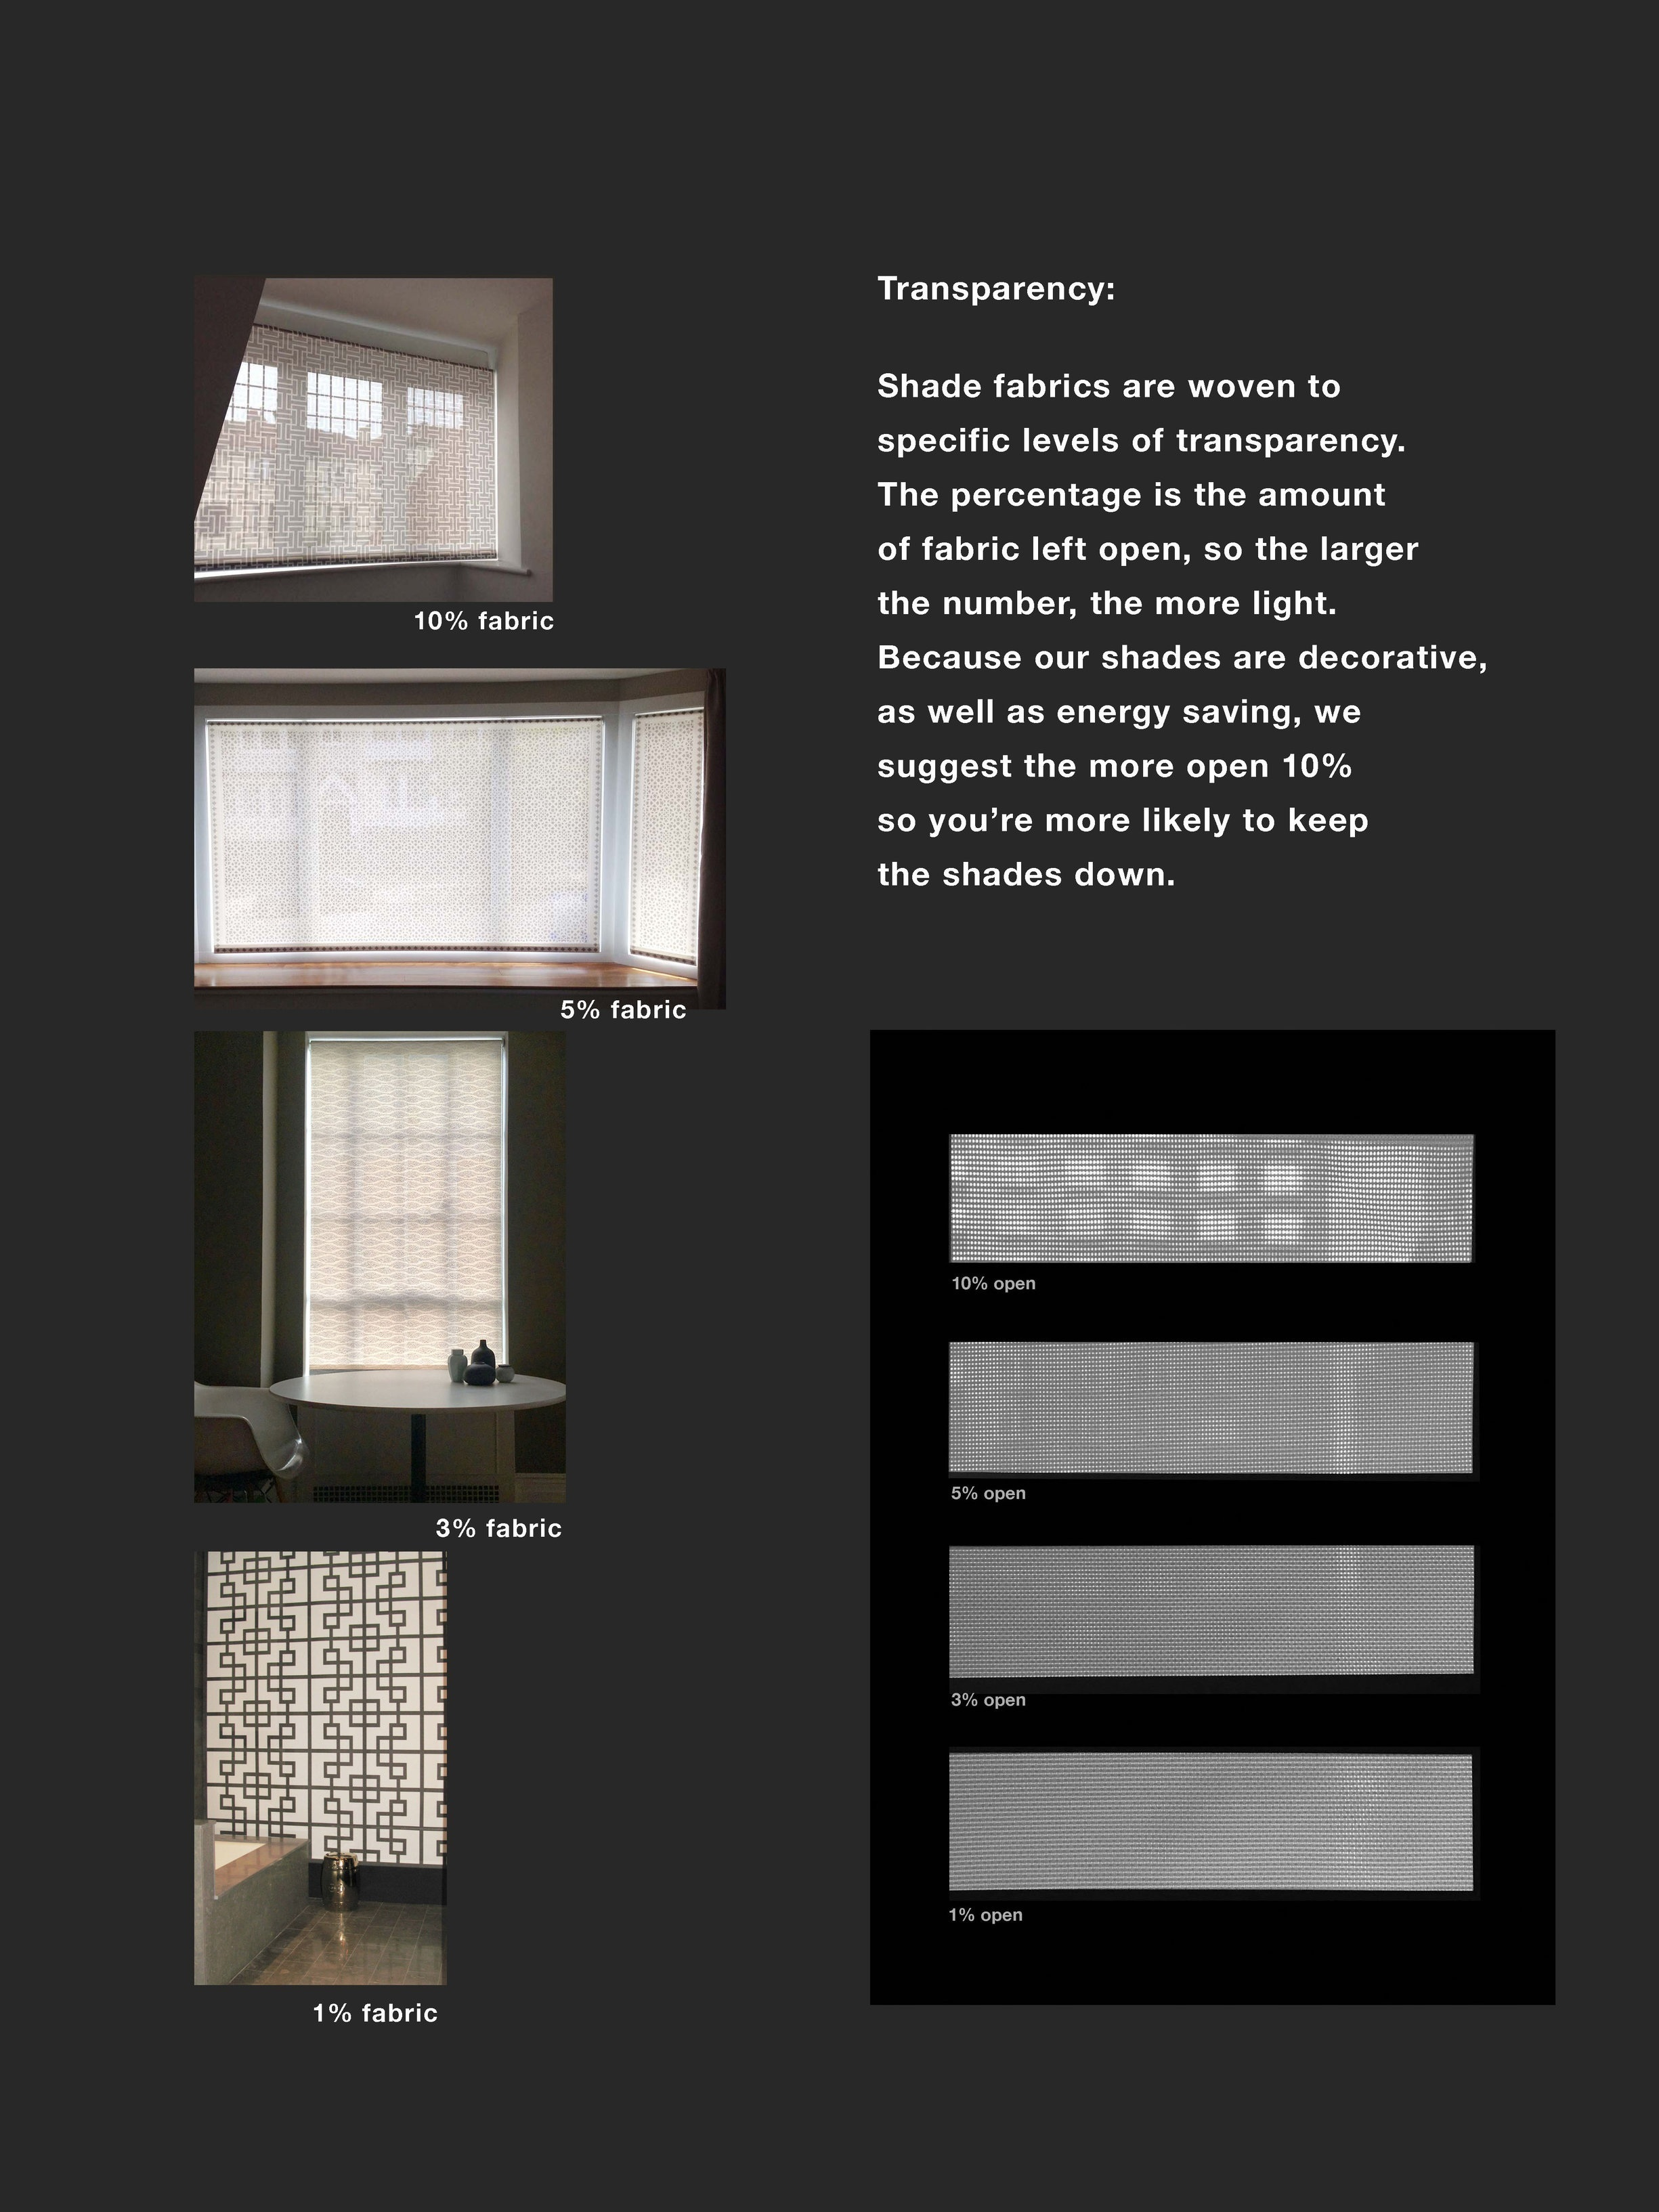 Will people be able to see through my windows? - Not if you don't want them to! All solar shades provide daytime privacy. Since our shades are decorative, we recommend the most open materials for daytime use. When nighttime privacy is important, we can add a blackout shade, which can be easily mounted together with the day shade.